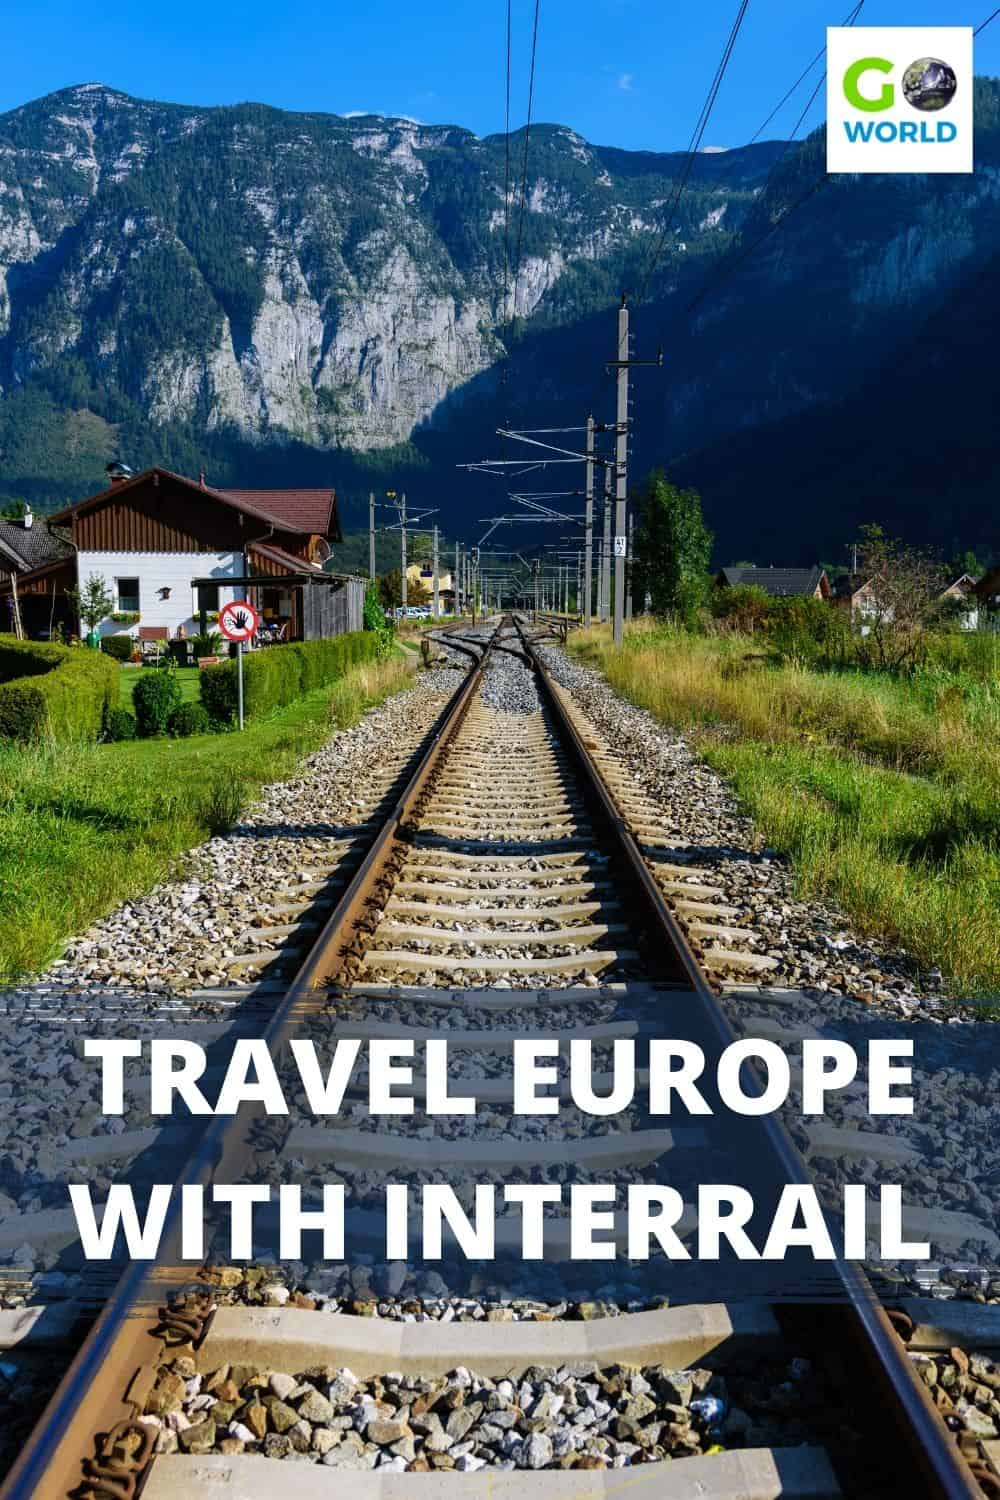 Do you dream of traveling through Europe by train? Consider using Eurail or Interrail in Europe to design your personal European adventure. #TravelEurope #EuropebyTrain #Interrail #Eurail #TrainsinEurope